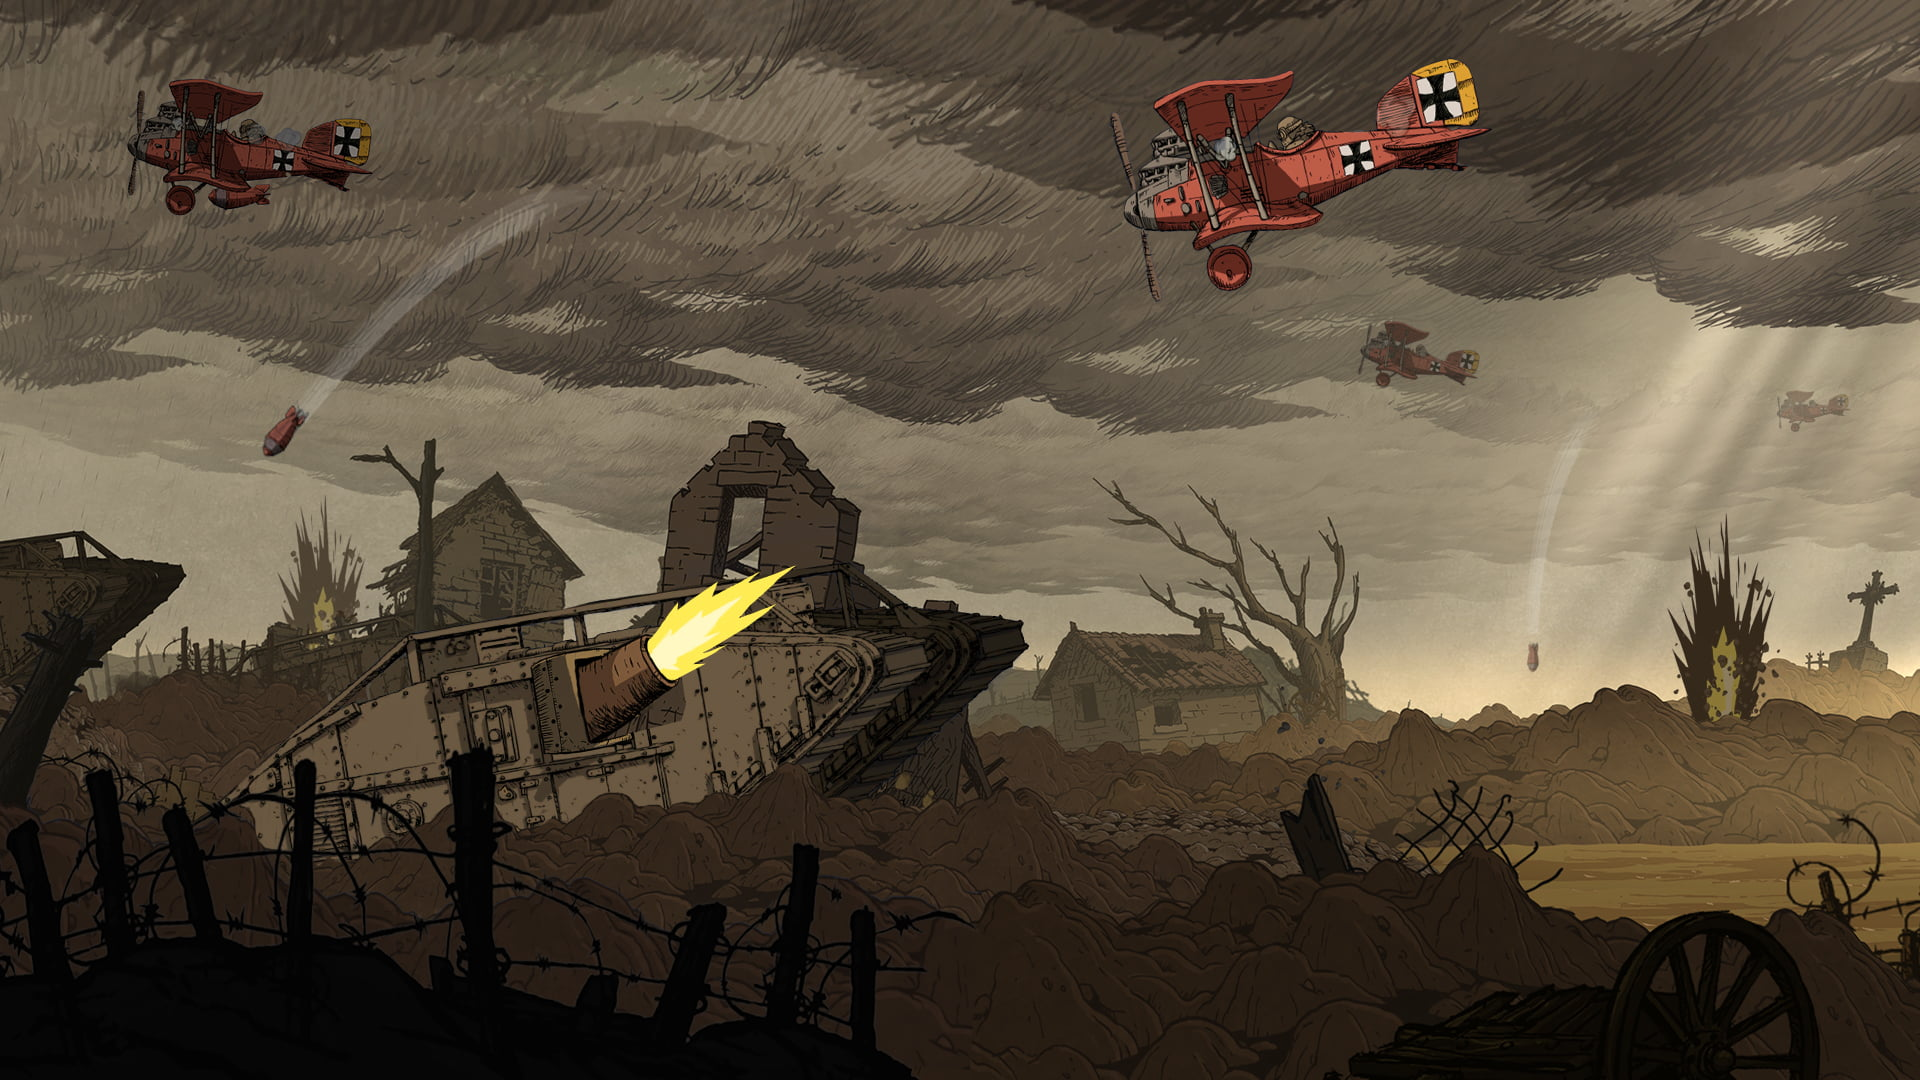 Photo of Mines, Soup Ladles, and War – Valiant Hearts Review